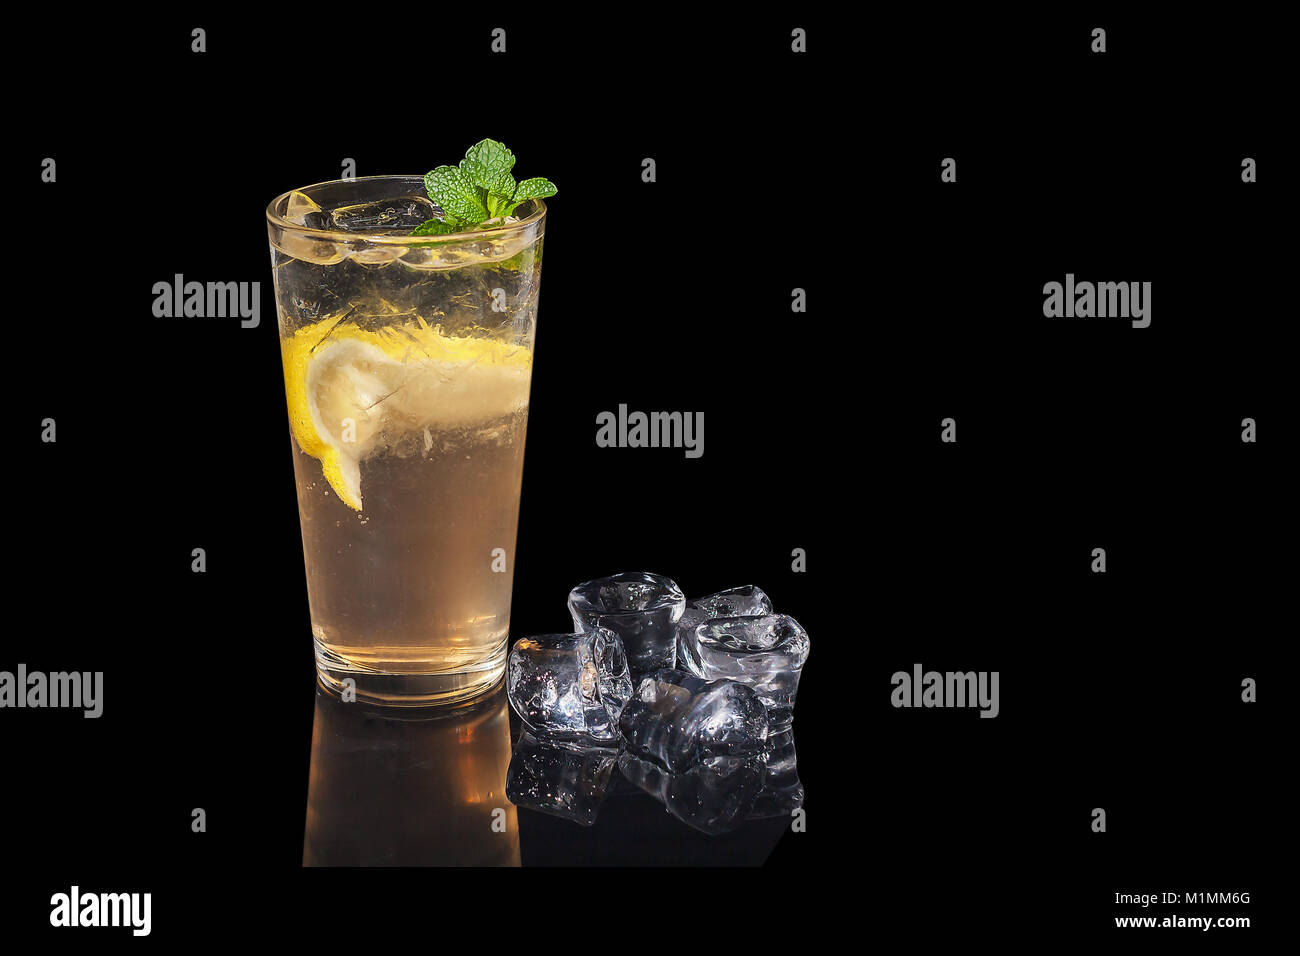 alcohol cocktail with lemon and mint on a black background - Stock Image